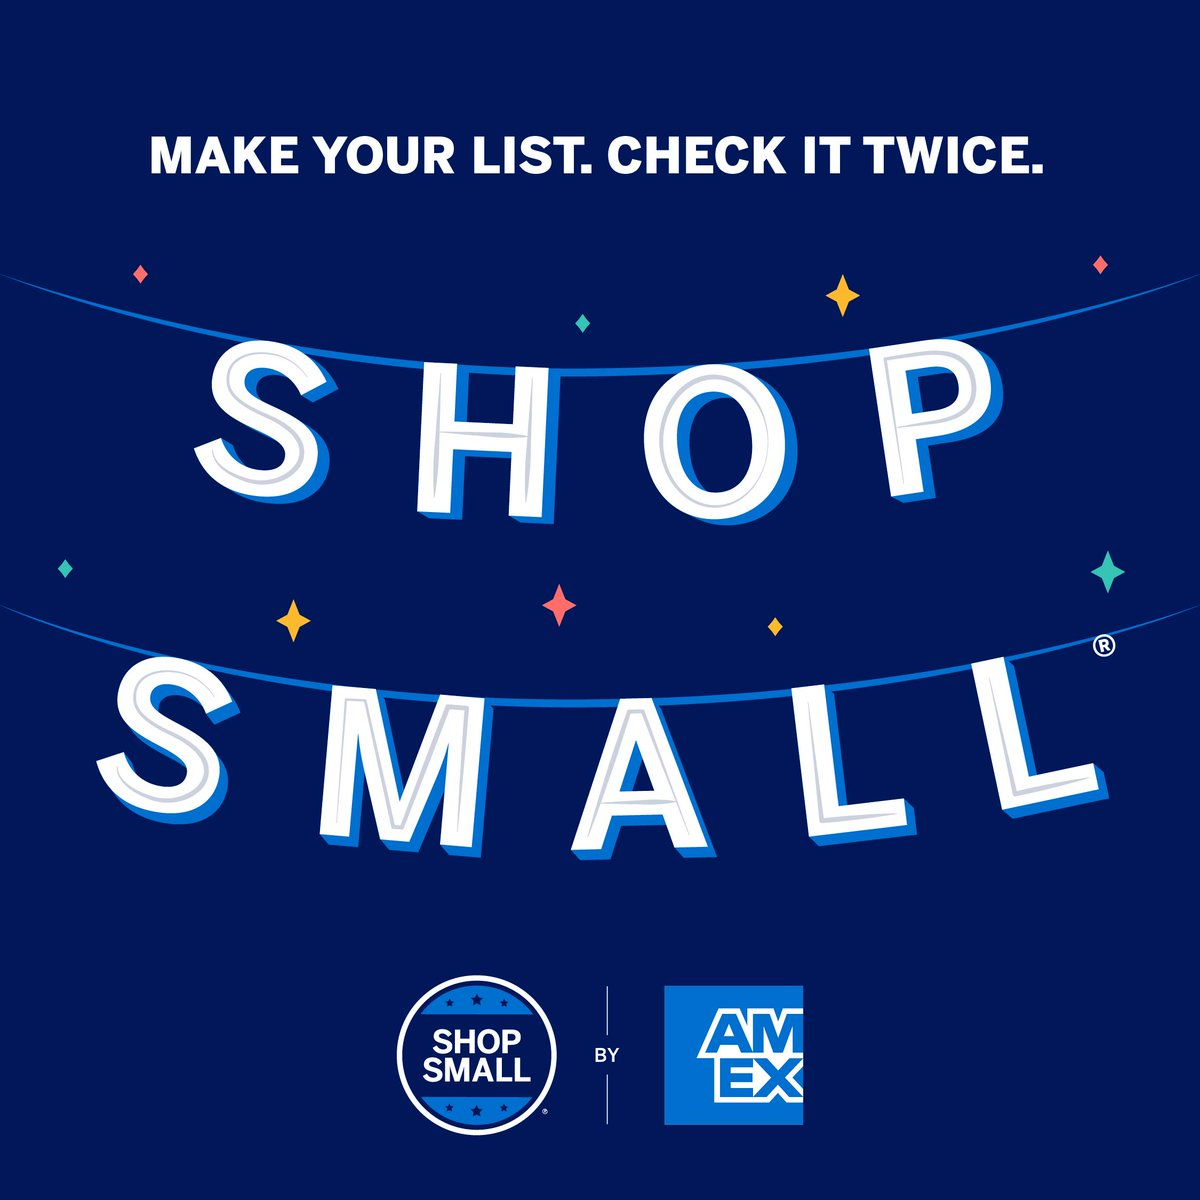 To celebrate #SmallBusinessSaturday here is Part 1 of my list of a few fave #Independent companies via #linkinbio #SmallBusiness #shopsmall #ShopSmallSaturday #Guide